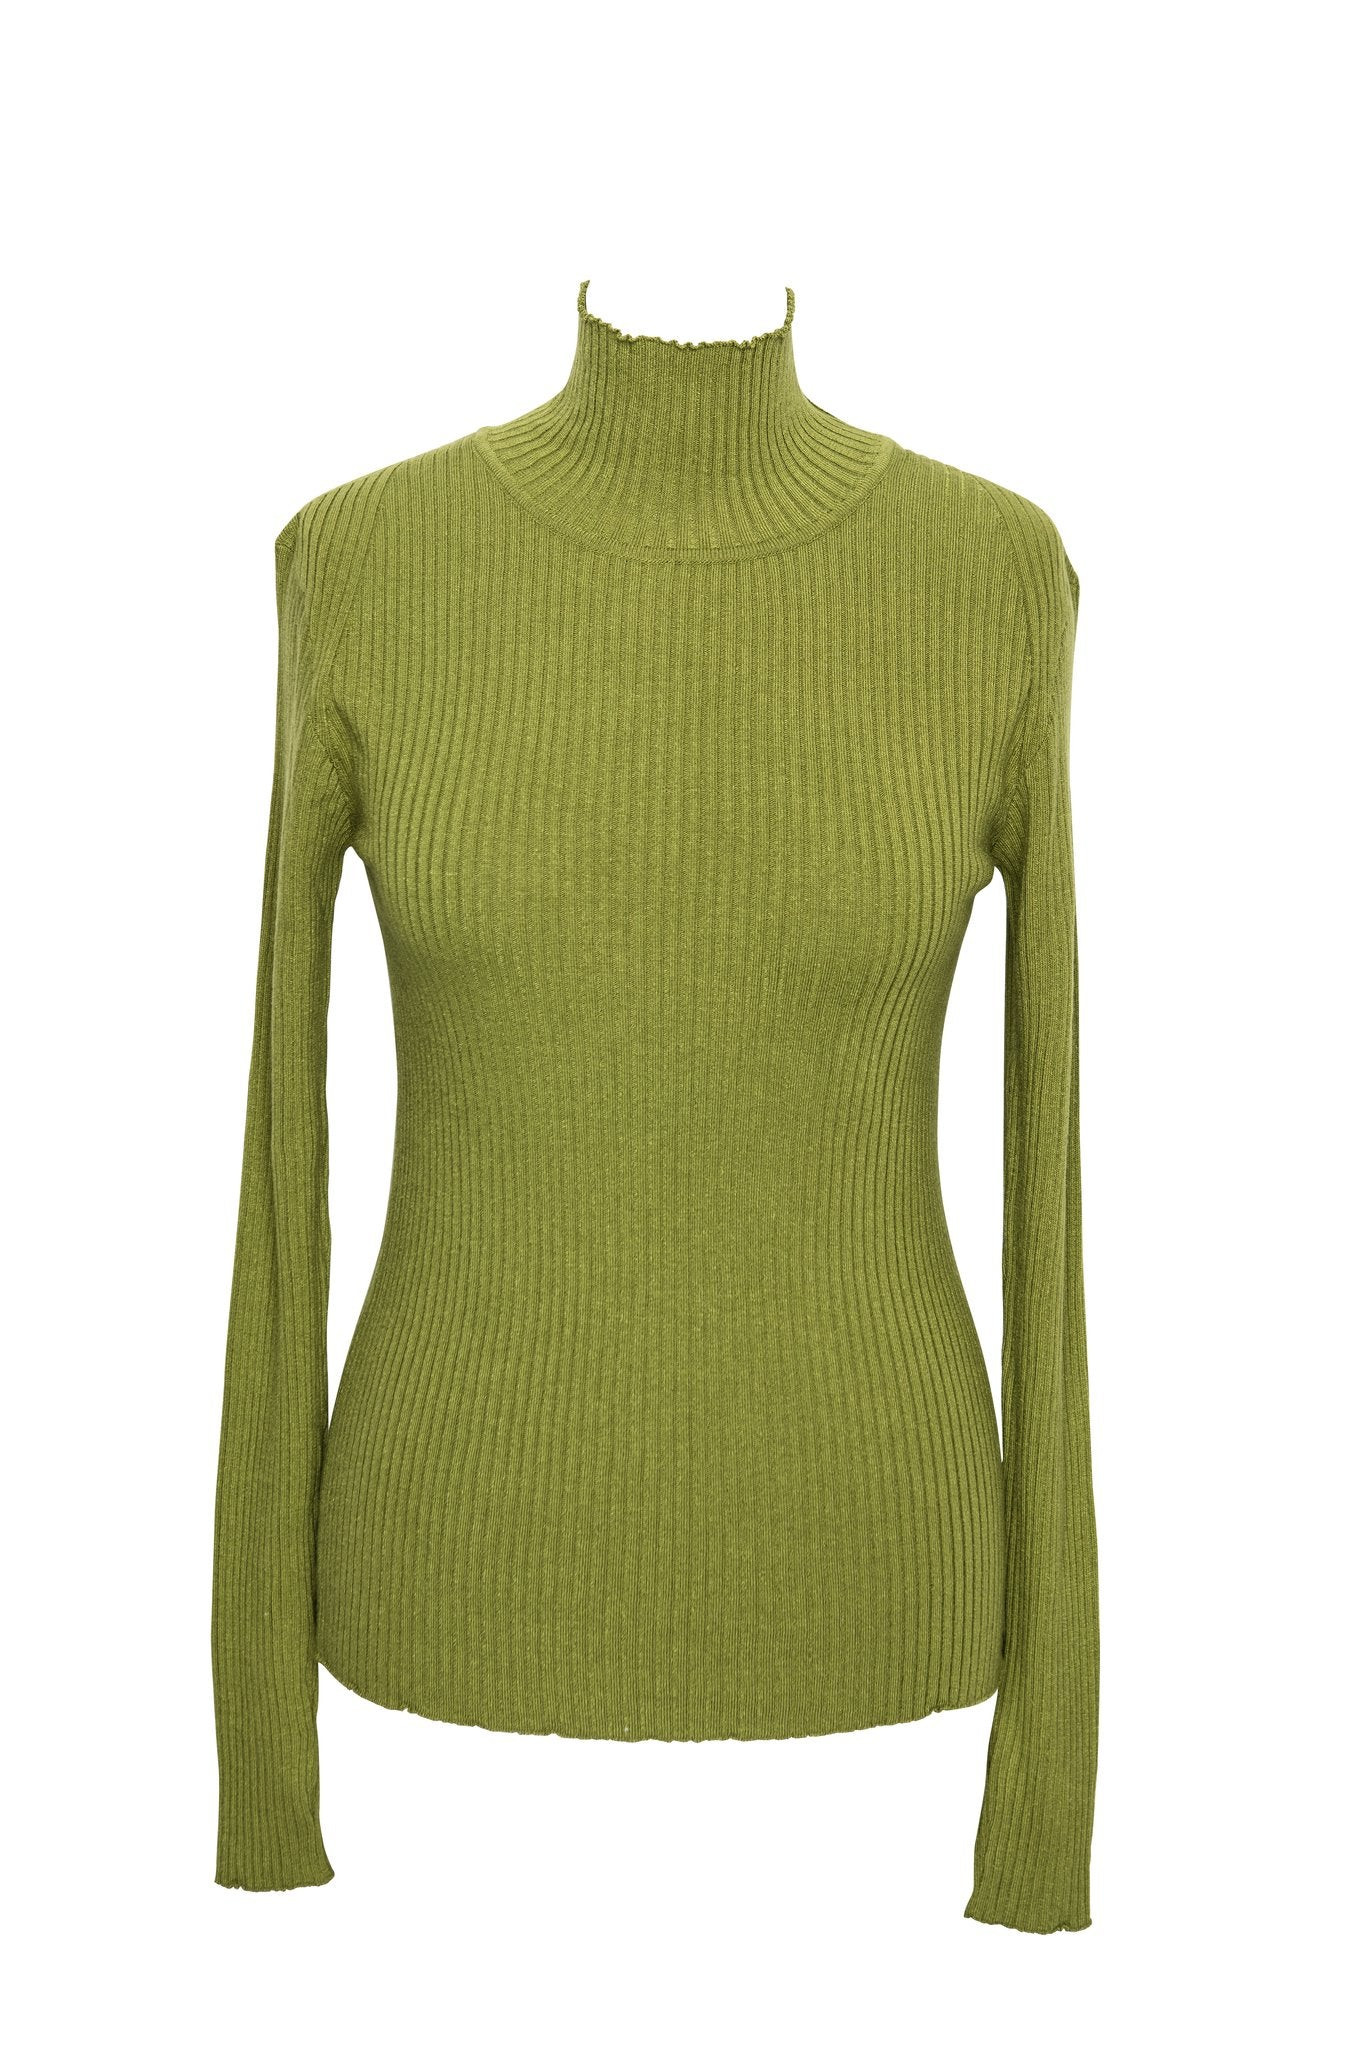 Sam Turtleneck / Moss